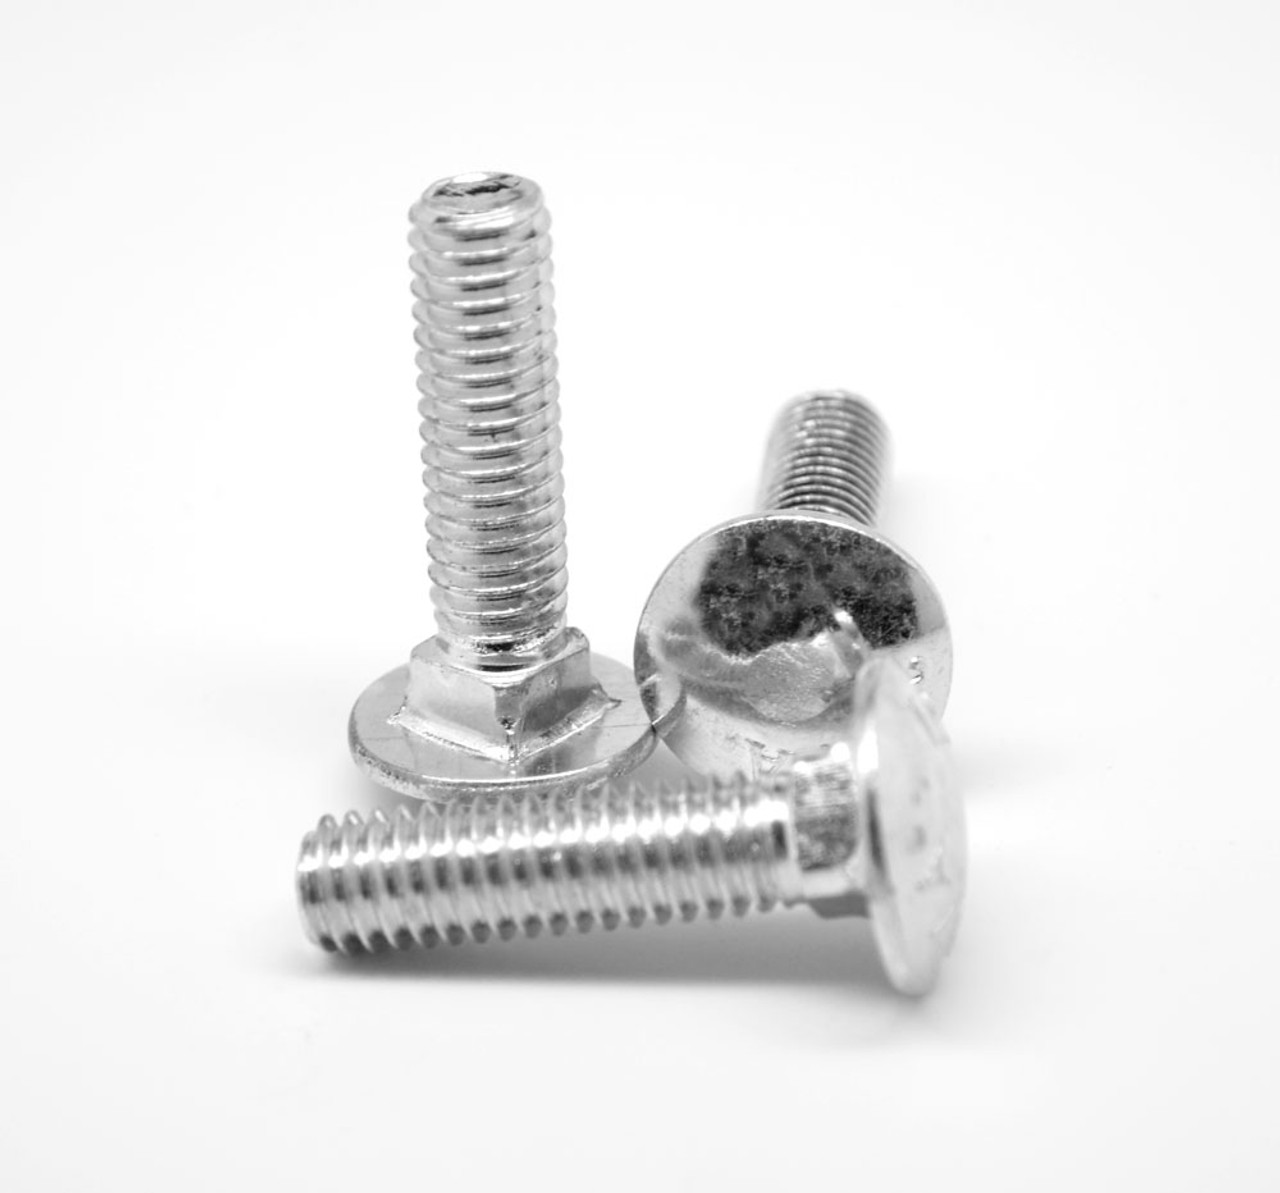 """#10-24 x 3 1/4"""" (FT) Coarse Thread A307 Grade A Carriage Bolt Low Carbon Steel Zinc Plated"""